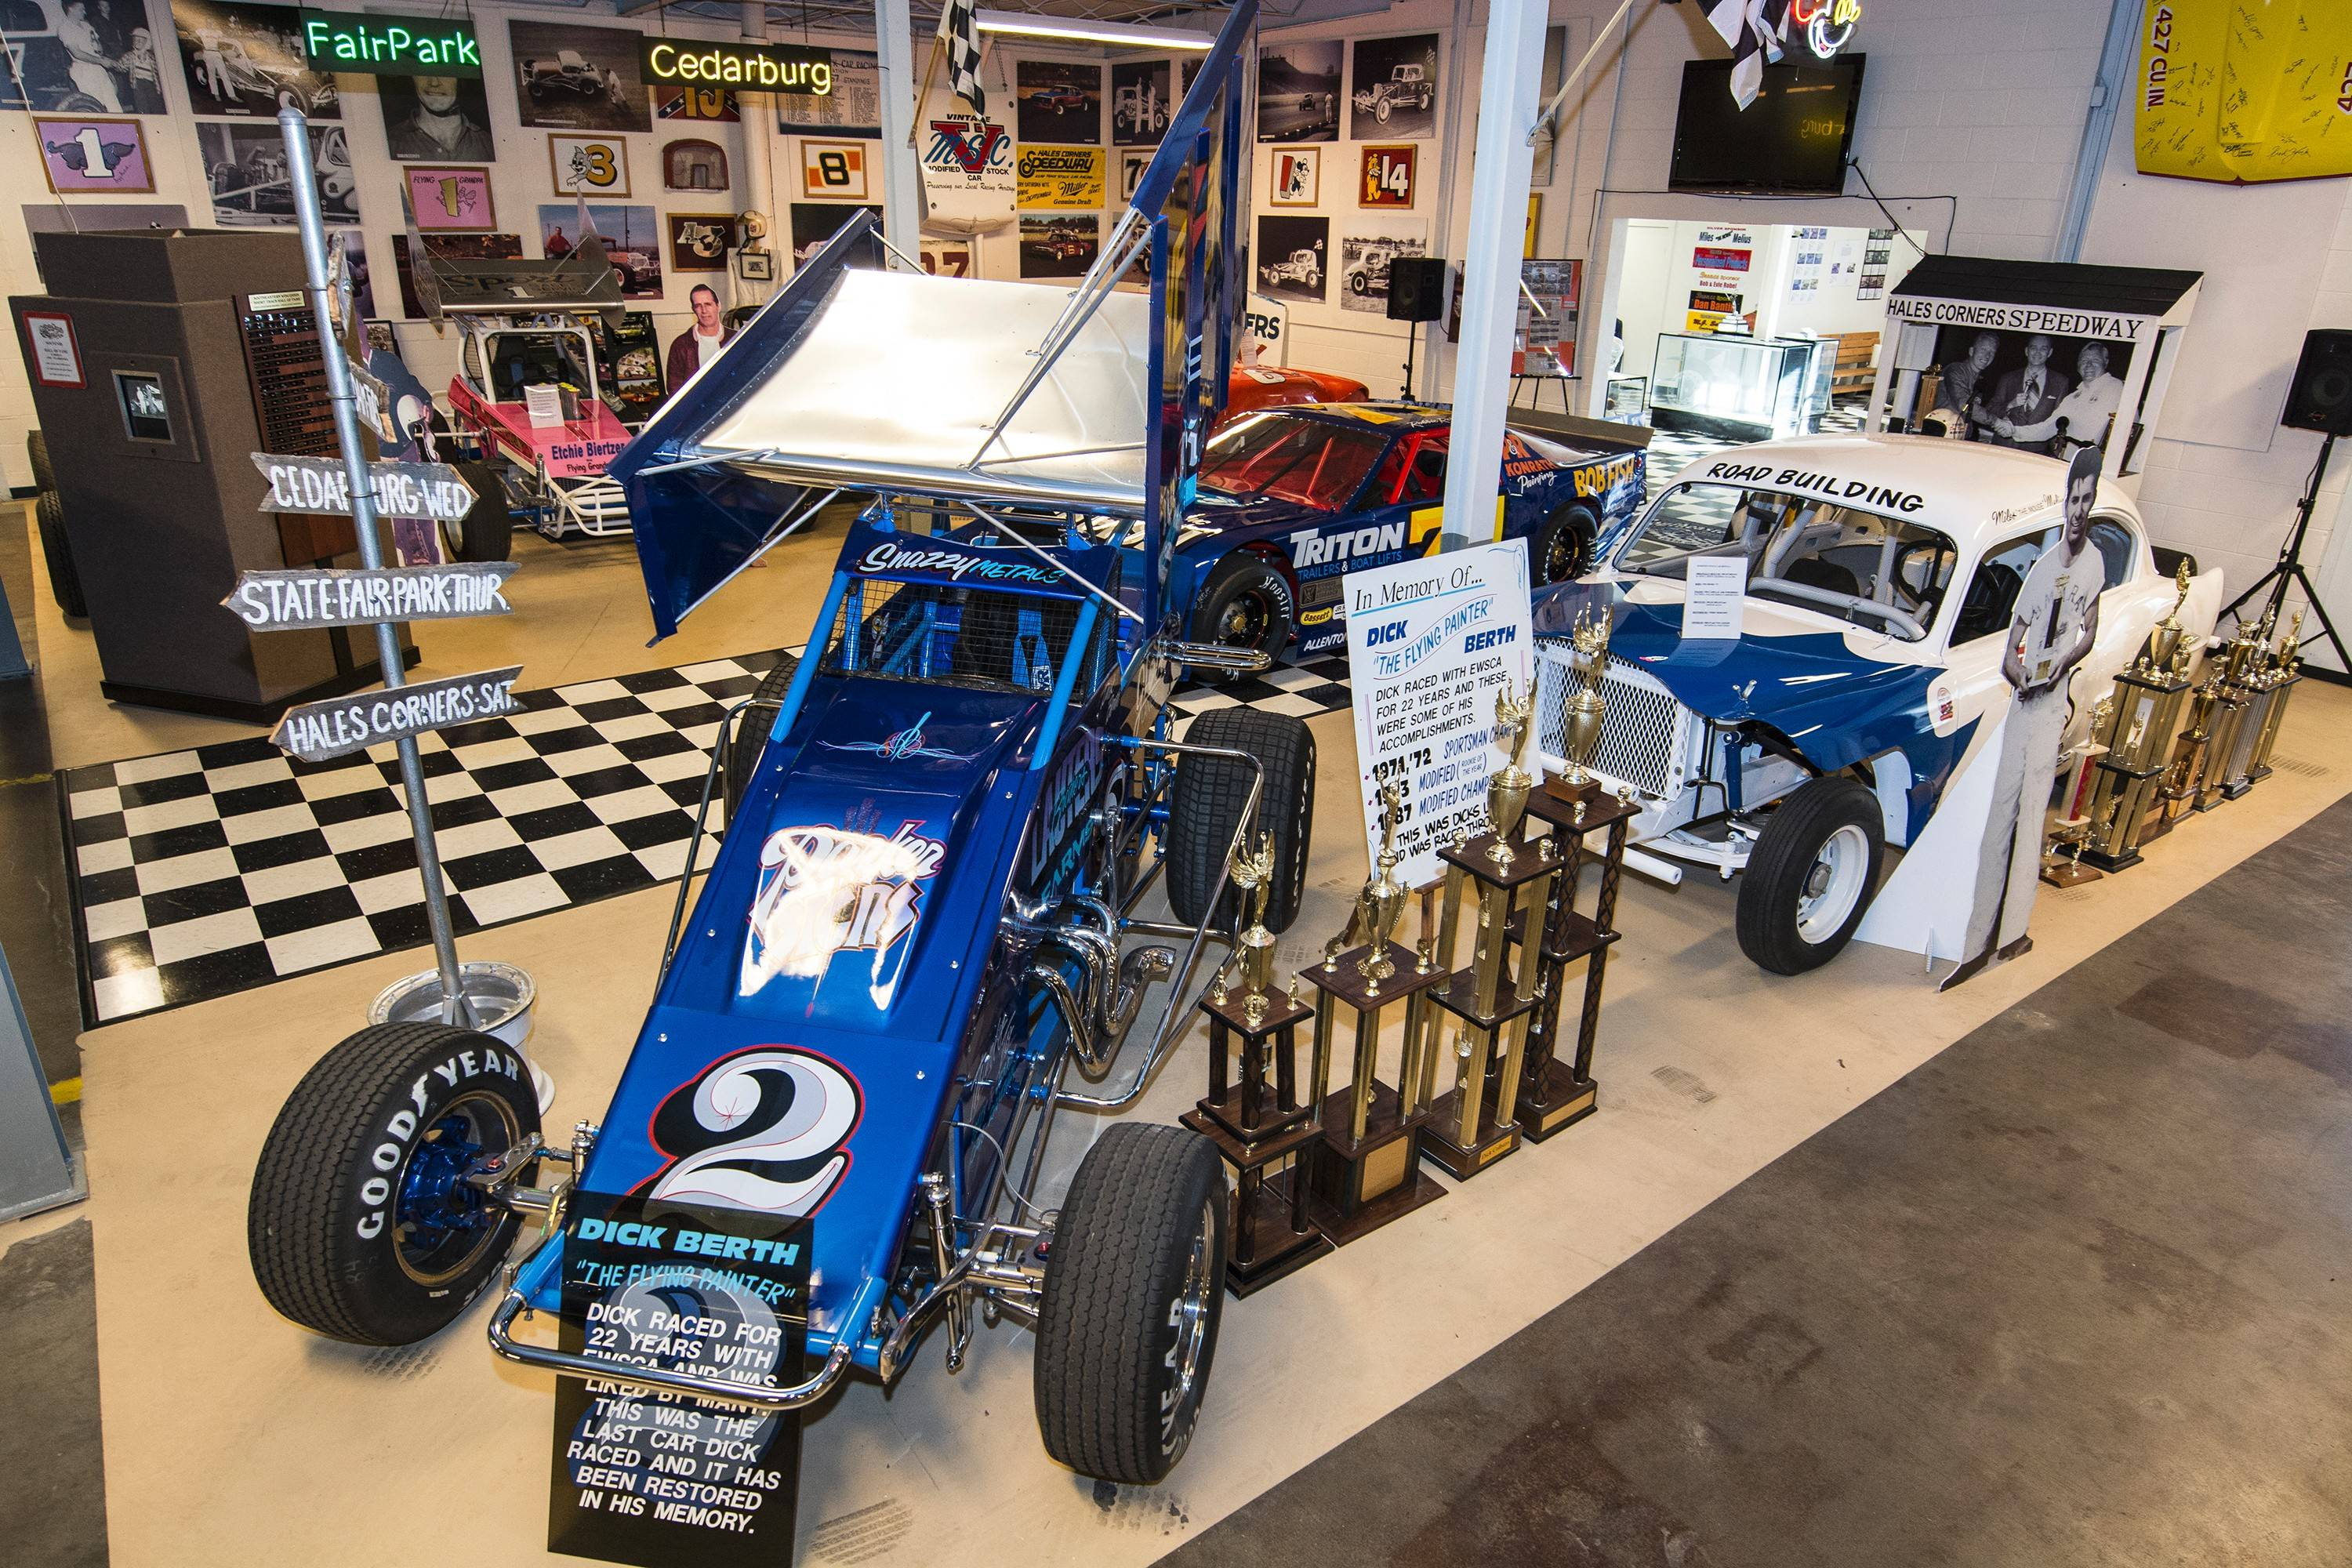 On the second floor of the museum, the Wisconsin Short Track Hall of Fame and its exhibit can be found.